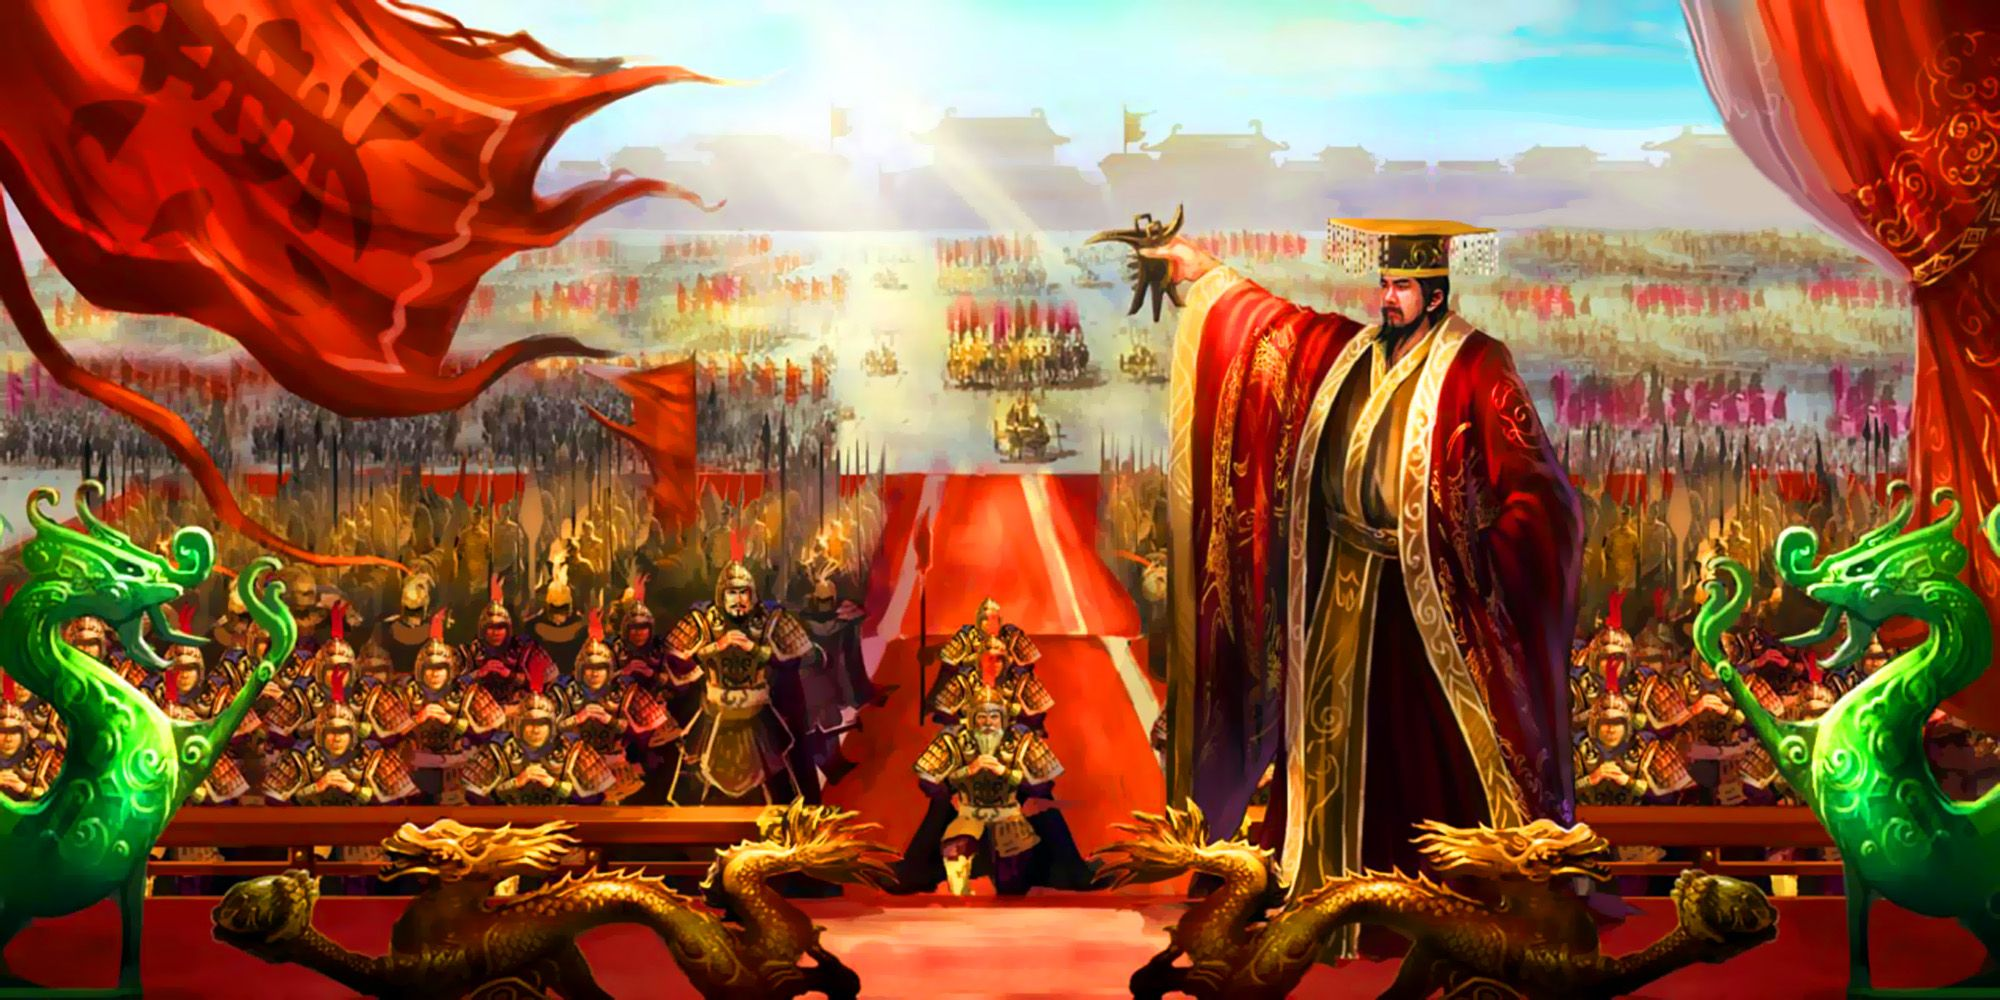 Emperor Wudi Of The Great Han Dynasty Celebrating China S